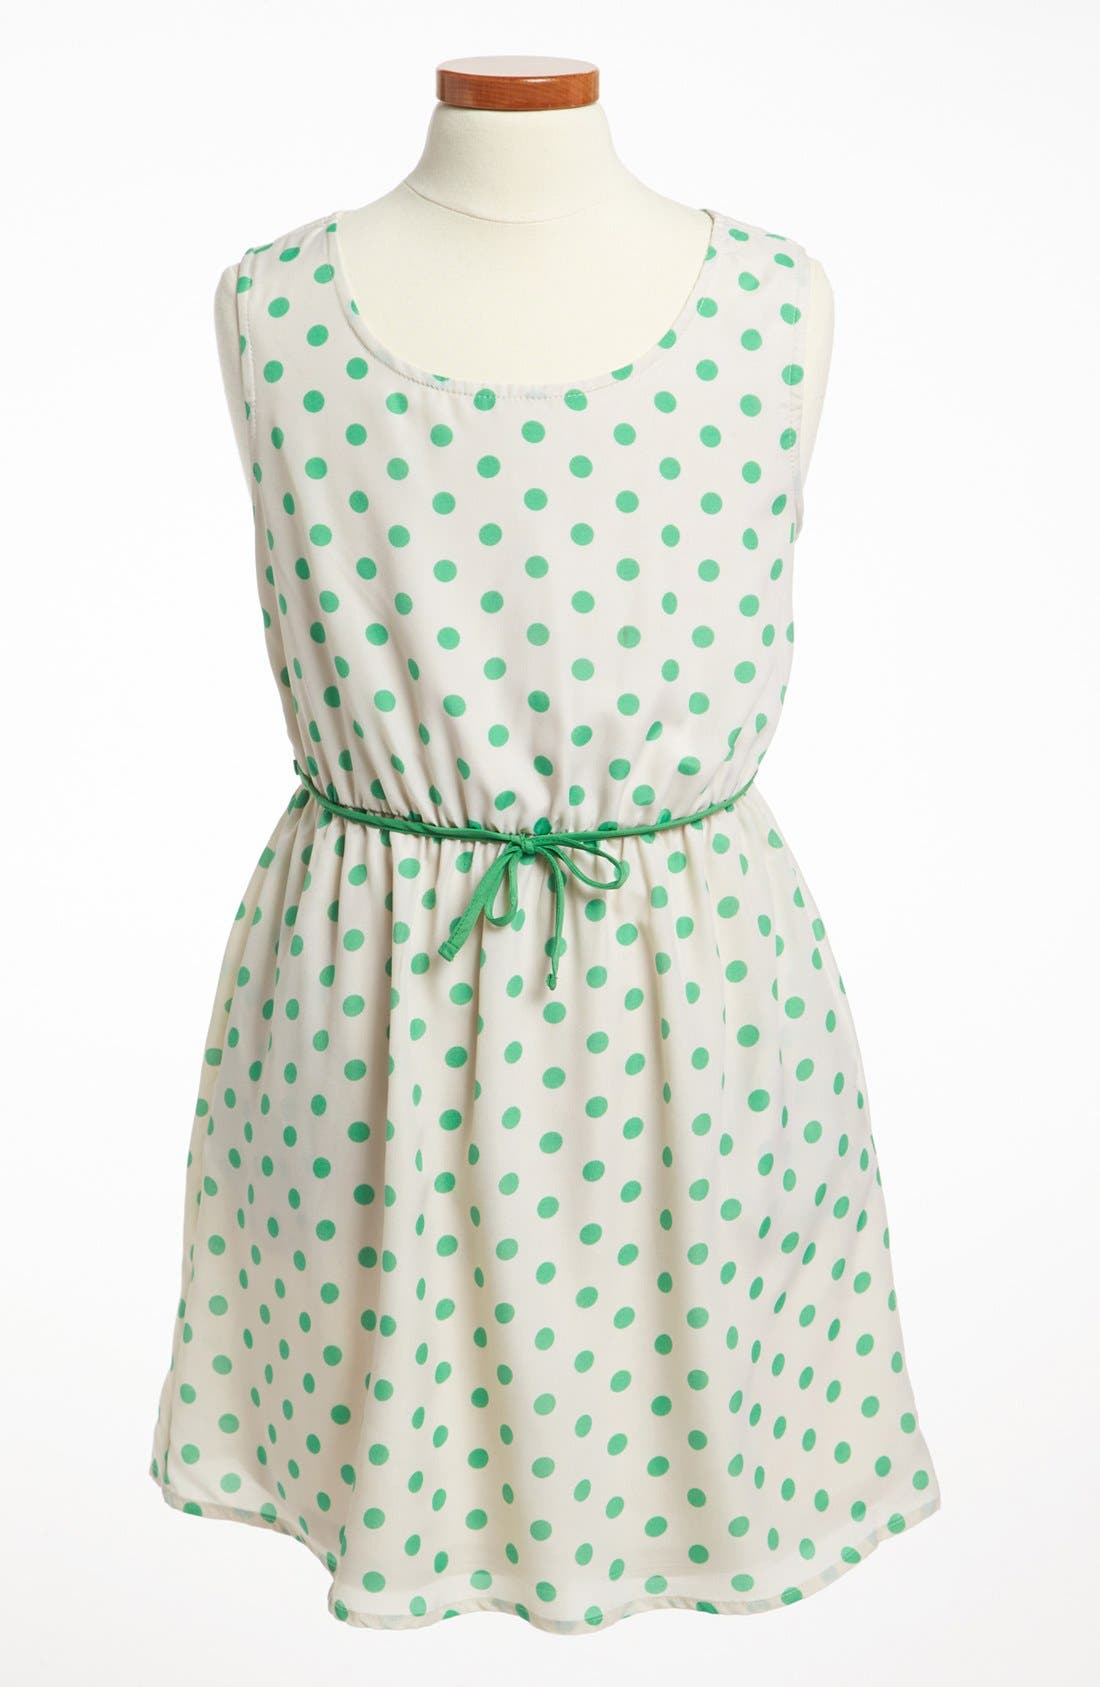 Main Image - Mia Chica Polka Dot Dress (Big Girls)